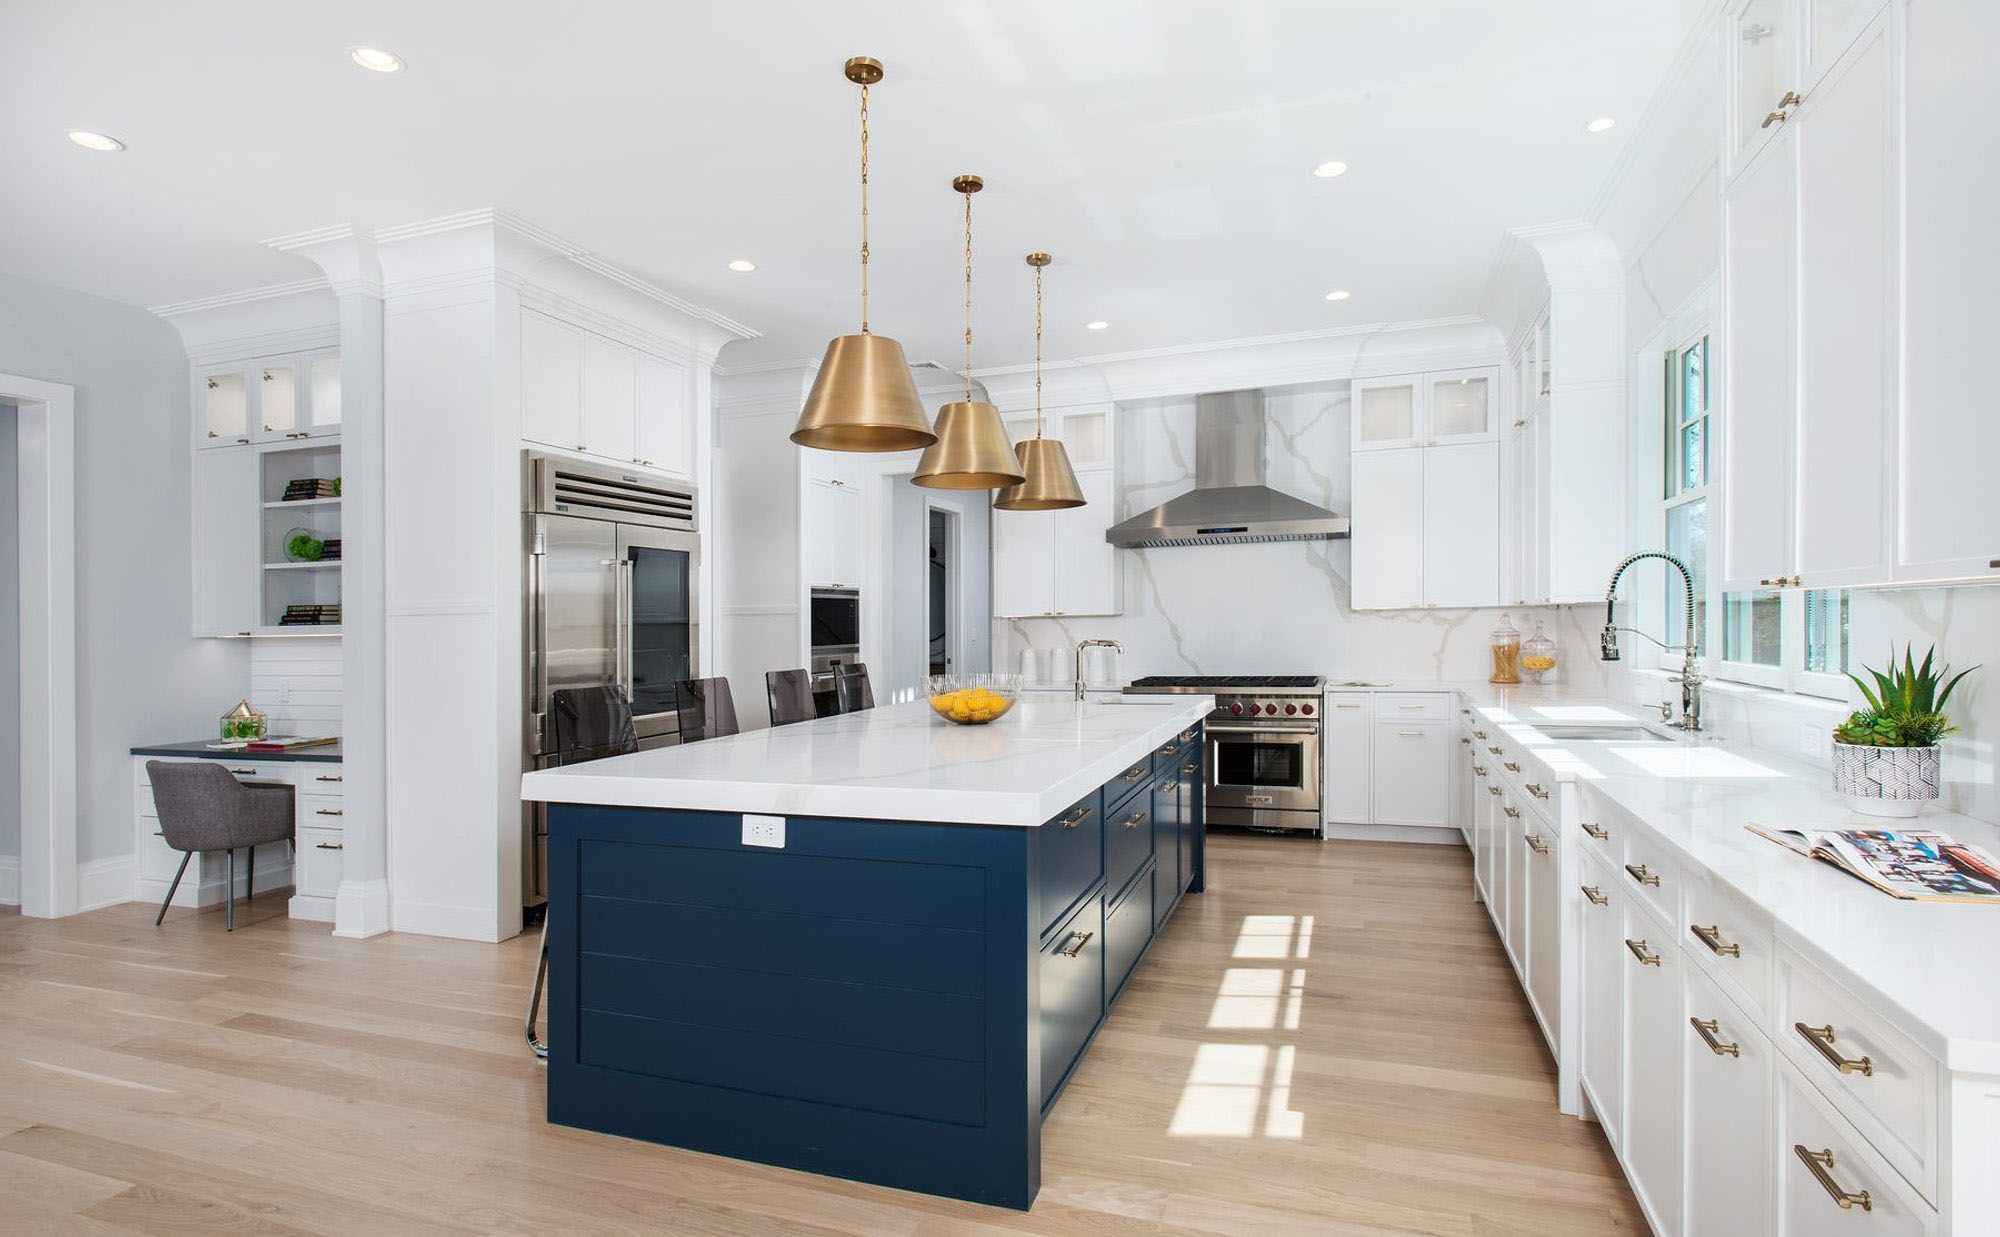 Multi color kitchen cabinets featuring a combination of white cabinets with a deep blue island. Pale hardwood floors, gold hardware and stainless steel appliances.